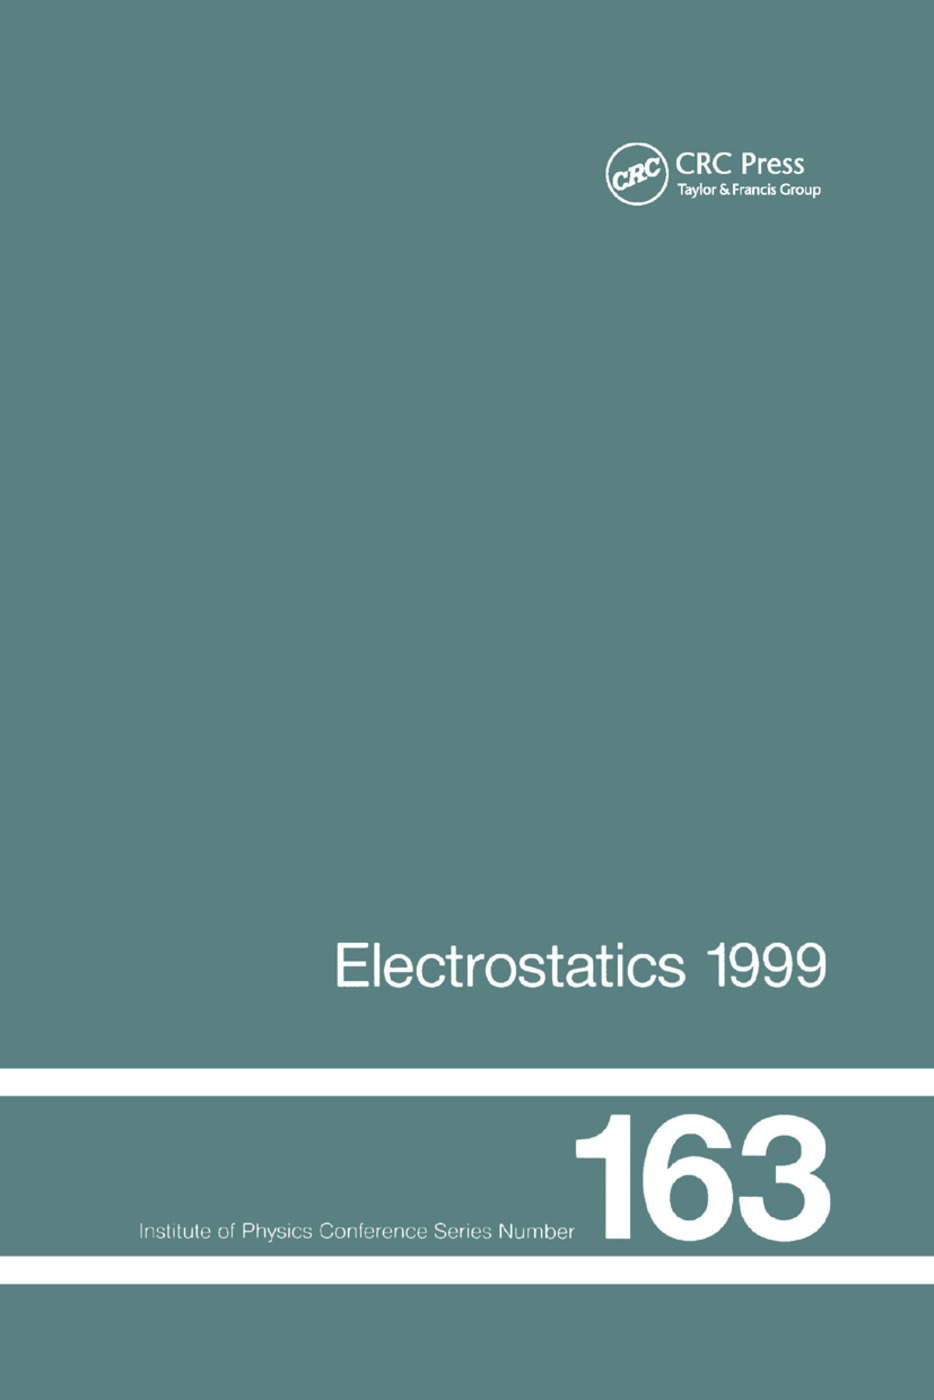 Electrostatics 1999, Proceedings of the 10th INT Conference, Cambridge, UK, 28-31 March 1999